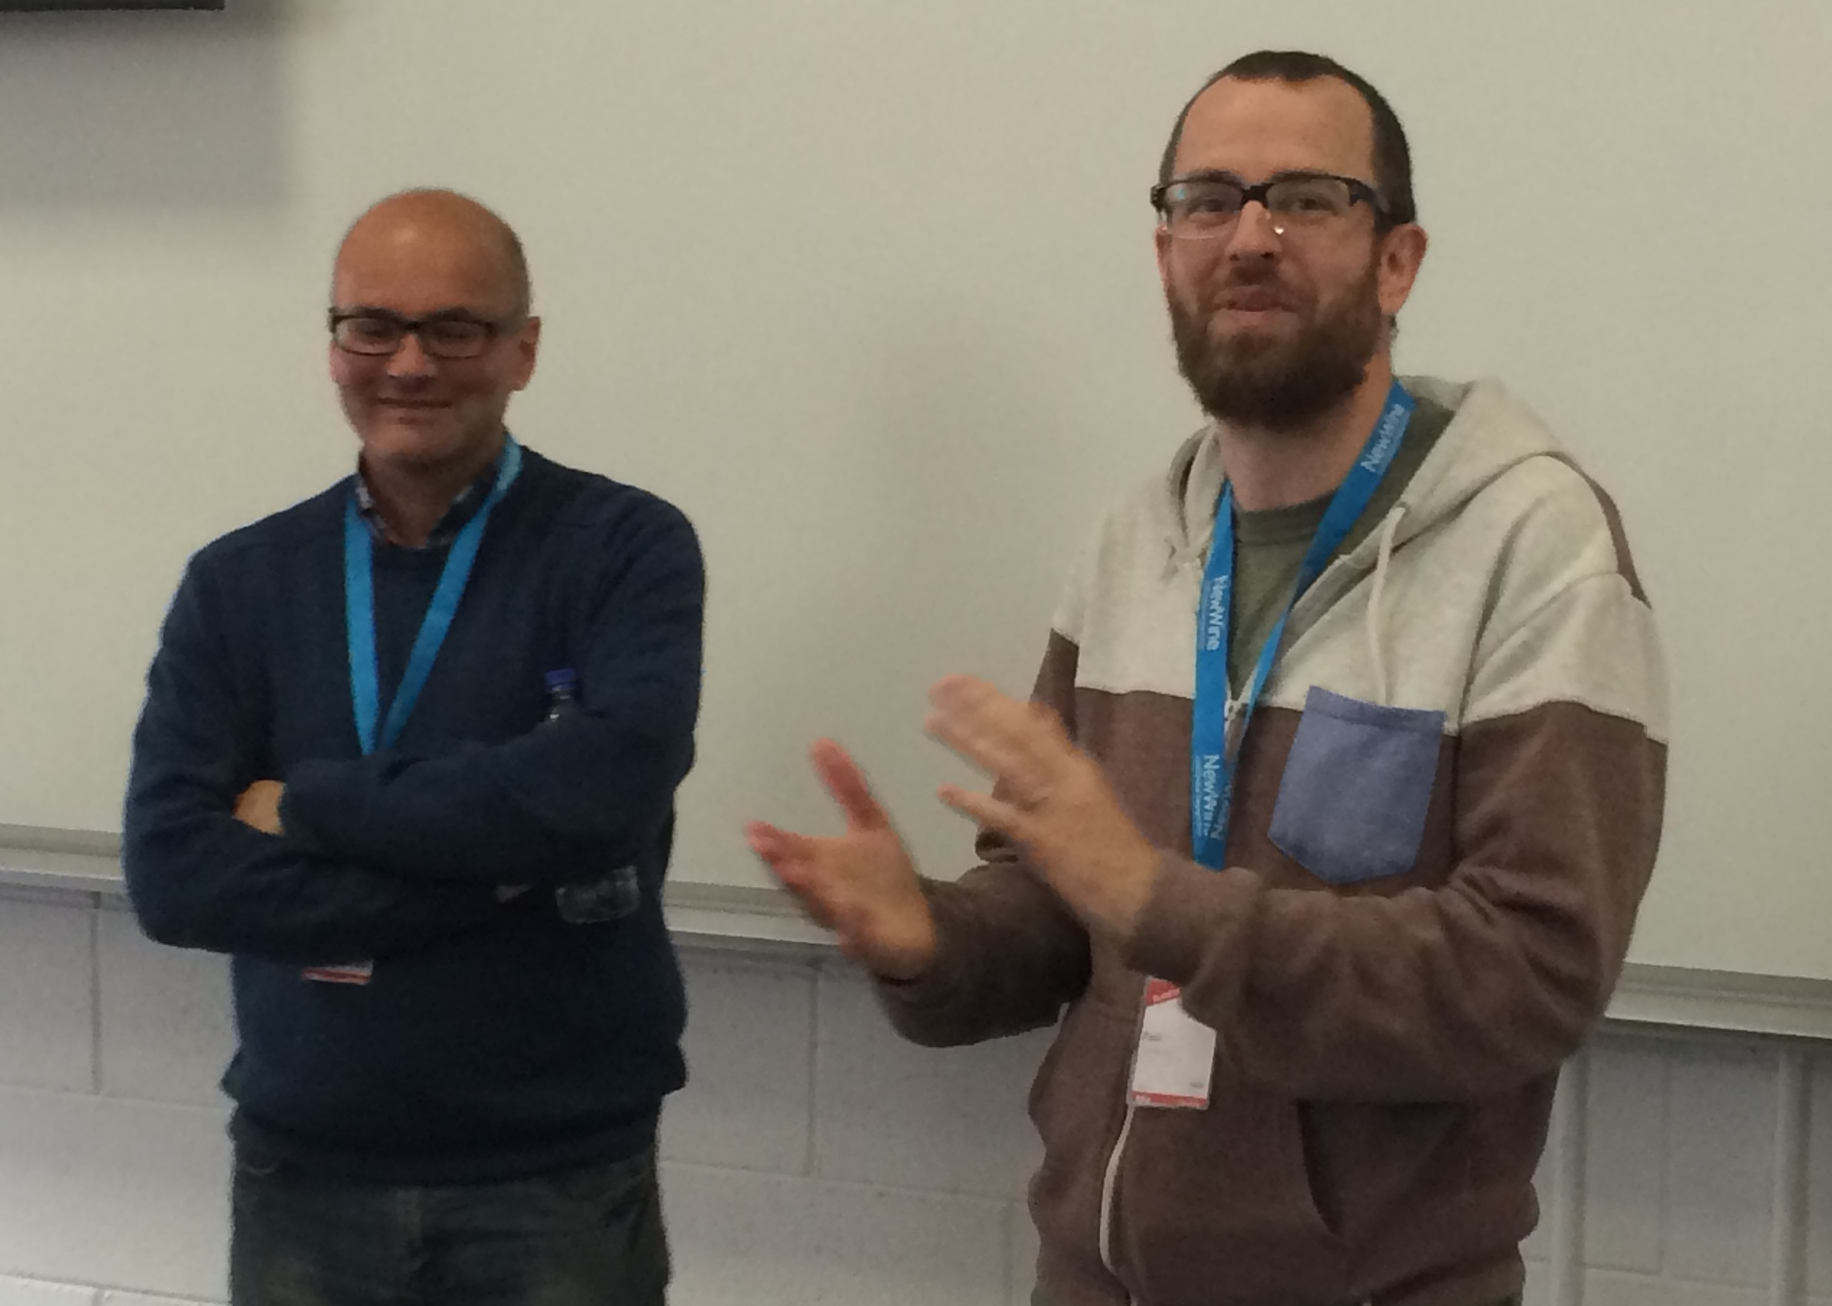 New Wine's Paul Jardine (right) introducing Neil Bennett at the start of his seminar on worship